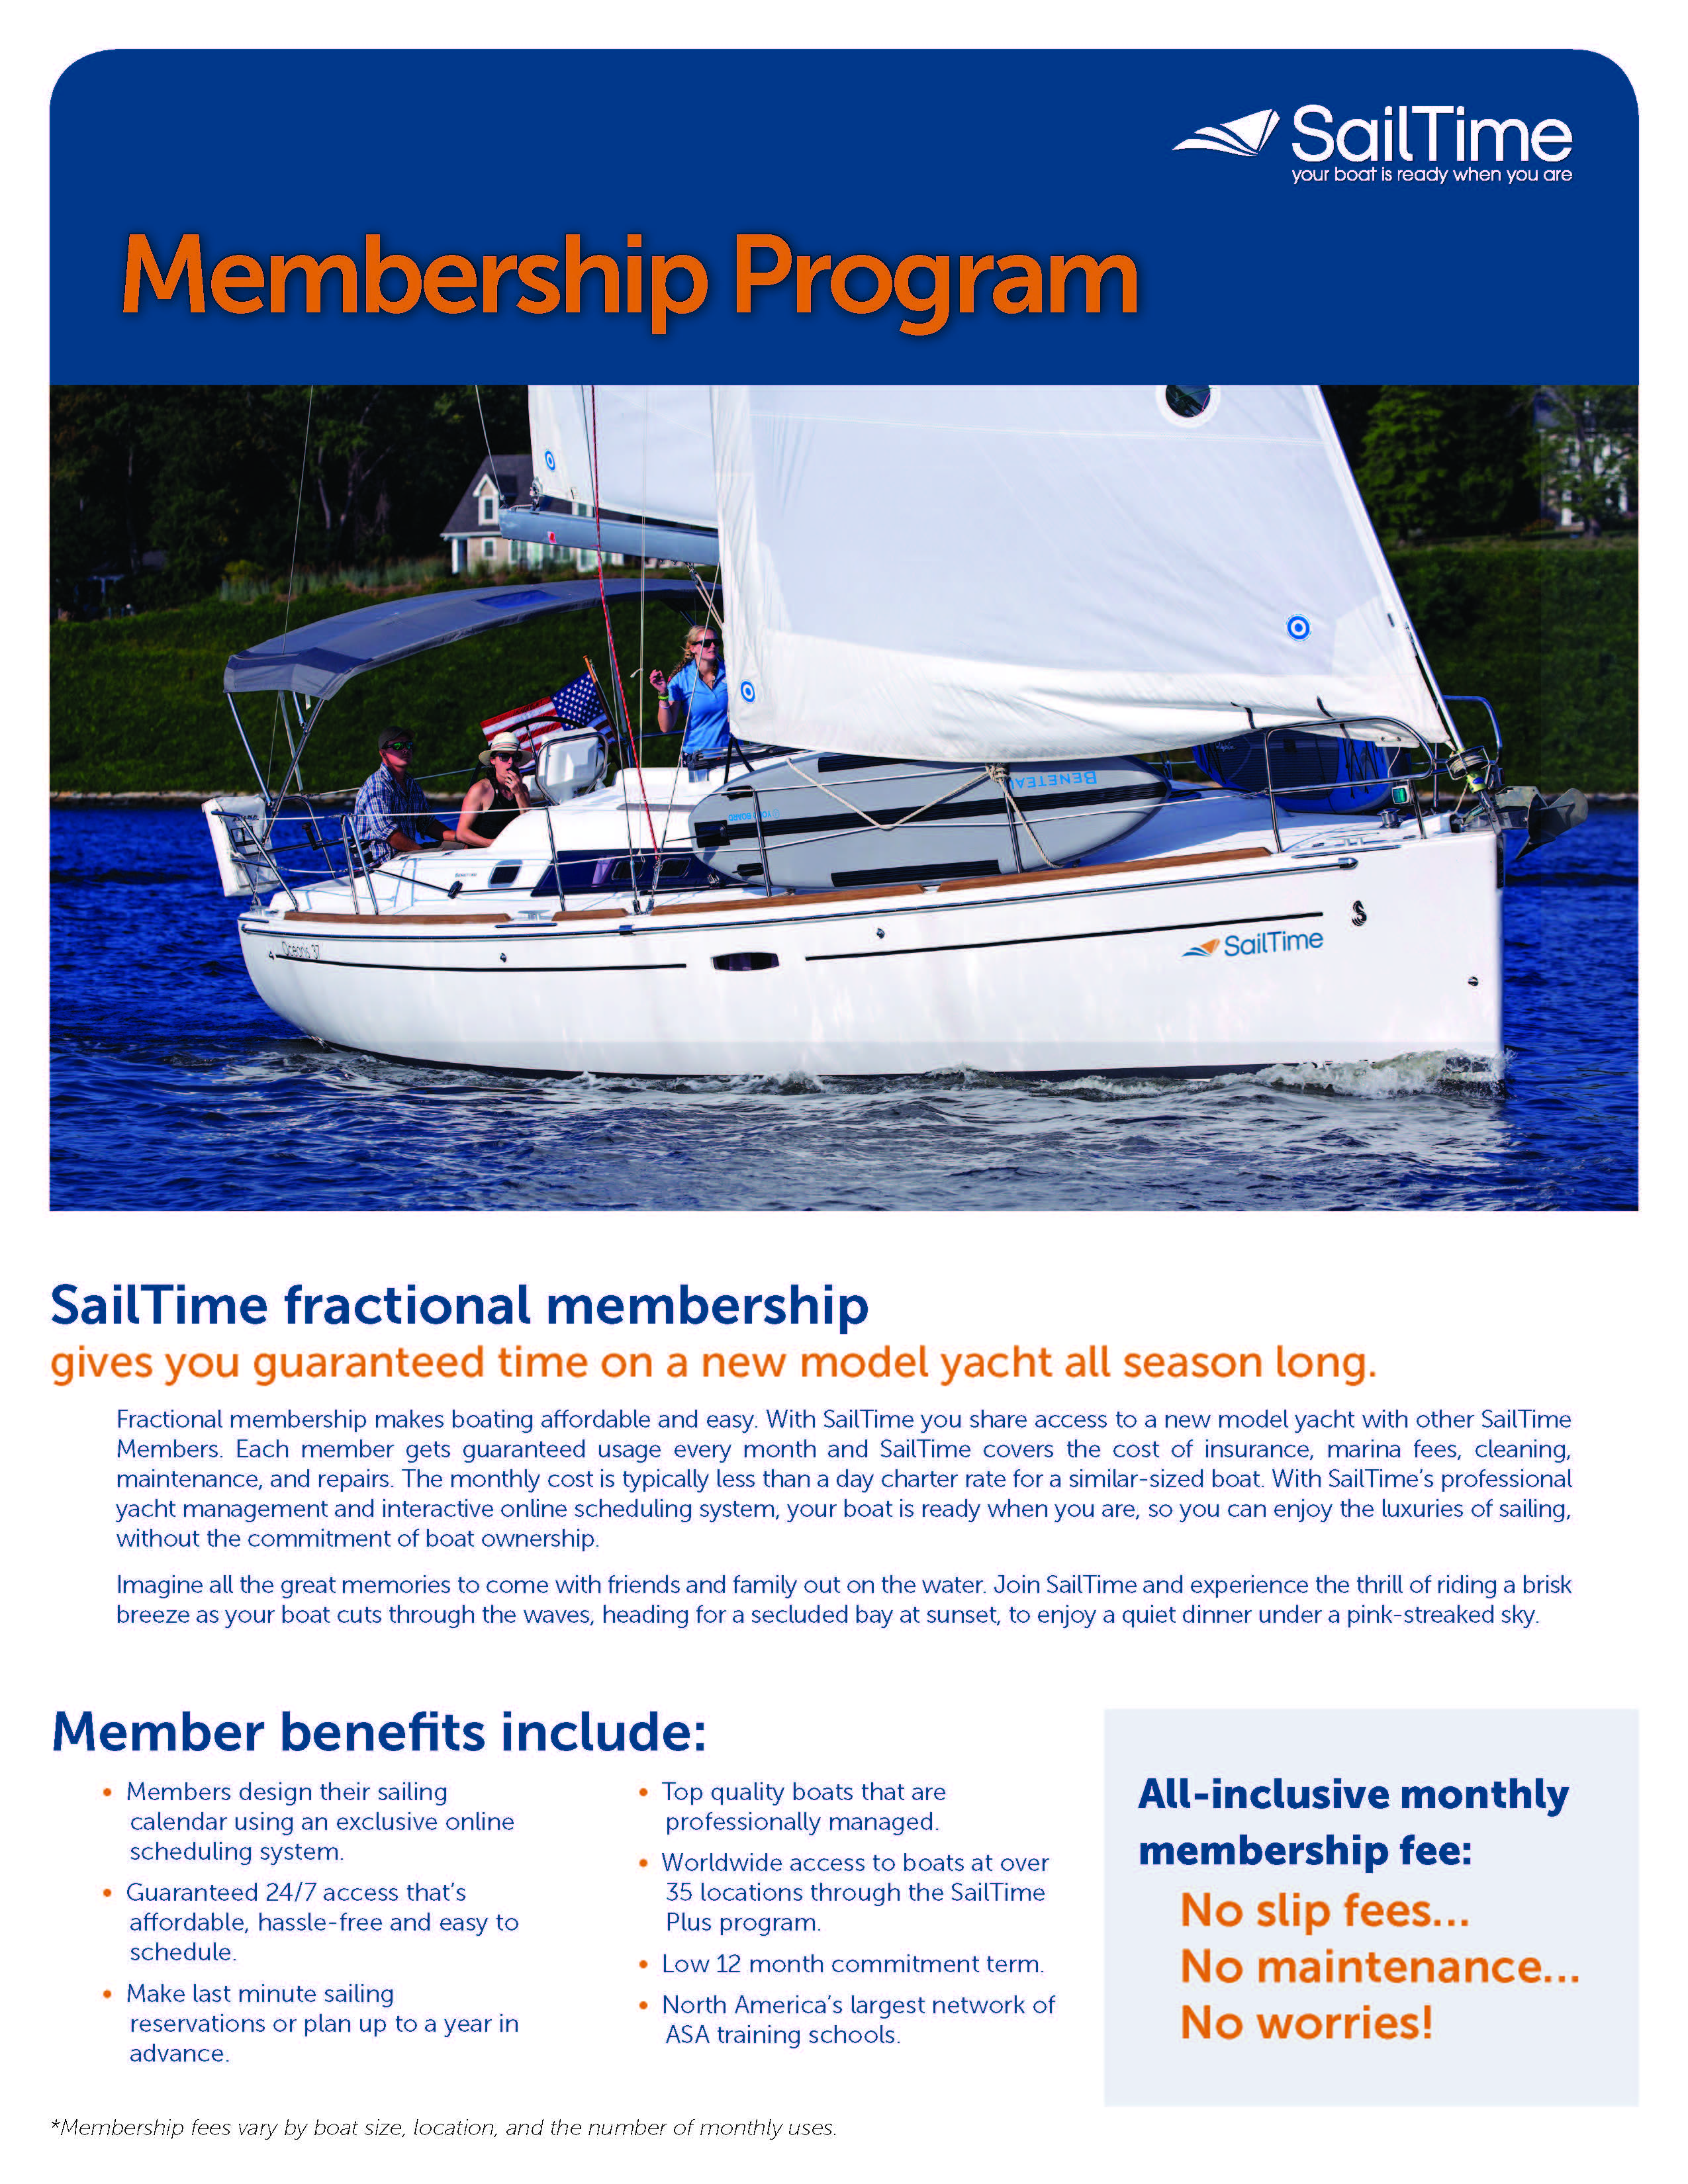 SailTime Membership Brochure (PDF)